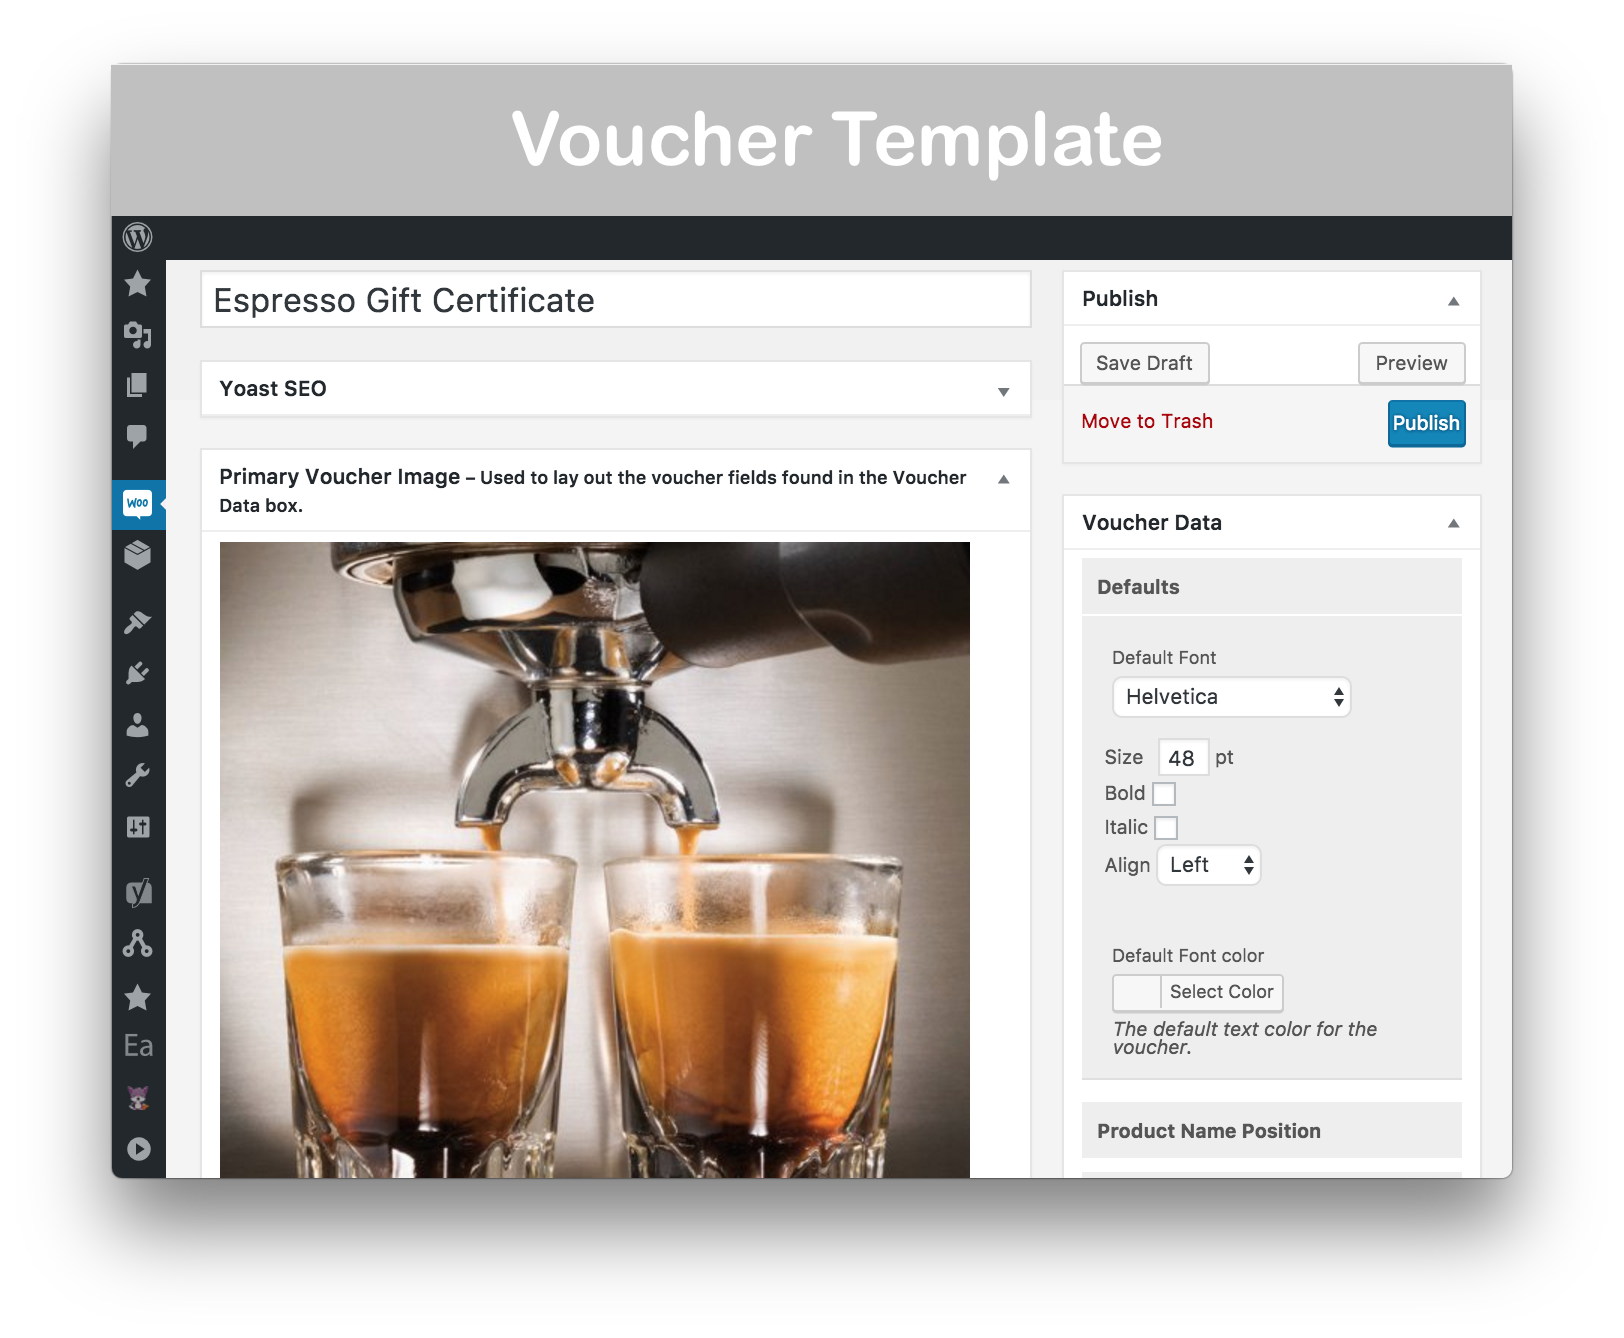 WooCommerce Gift Certificates Pro Download - Voucher Template 1